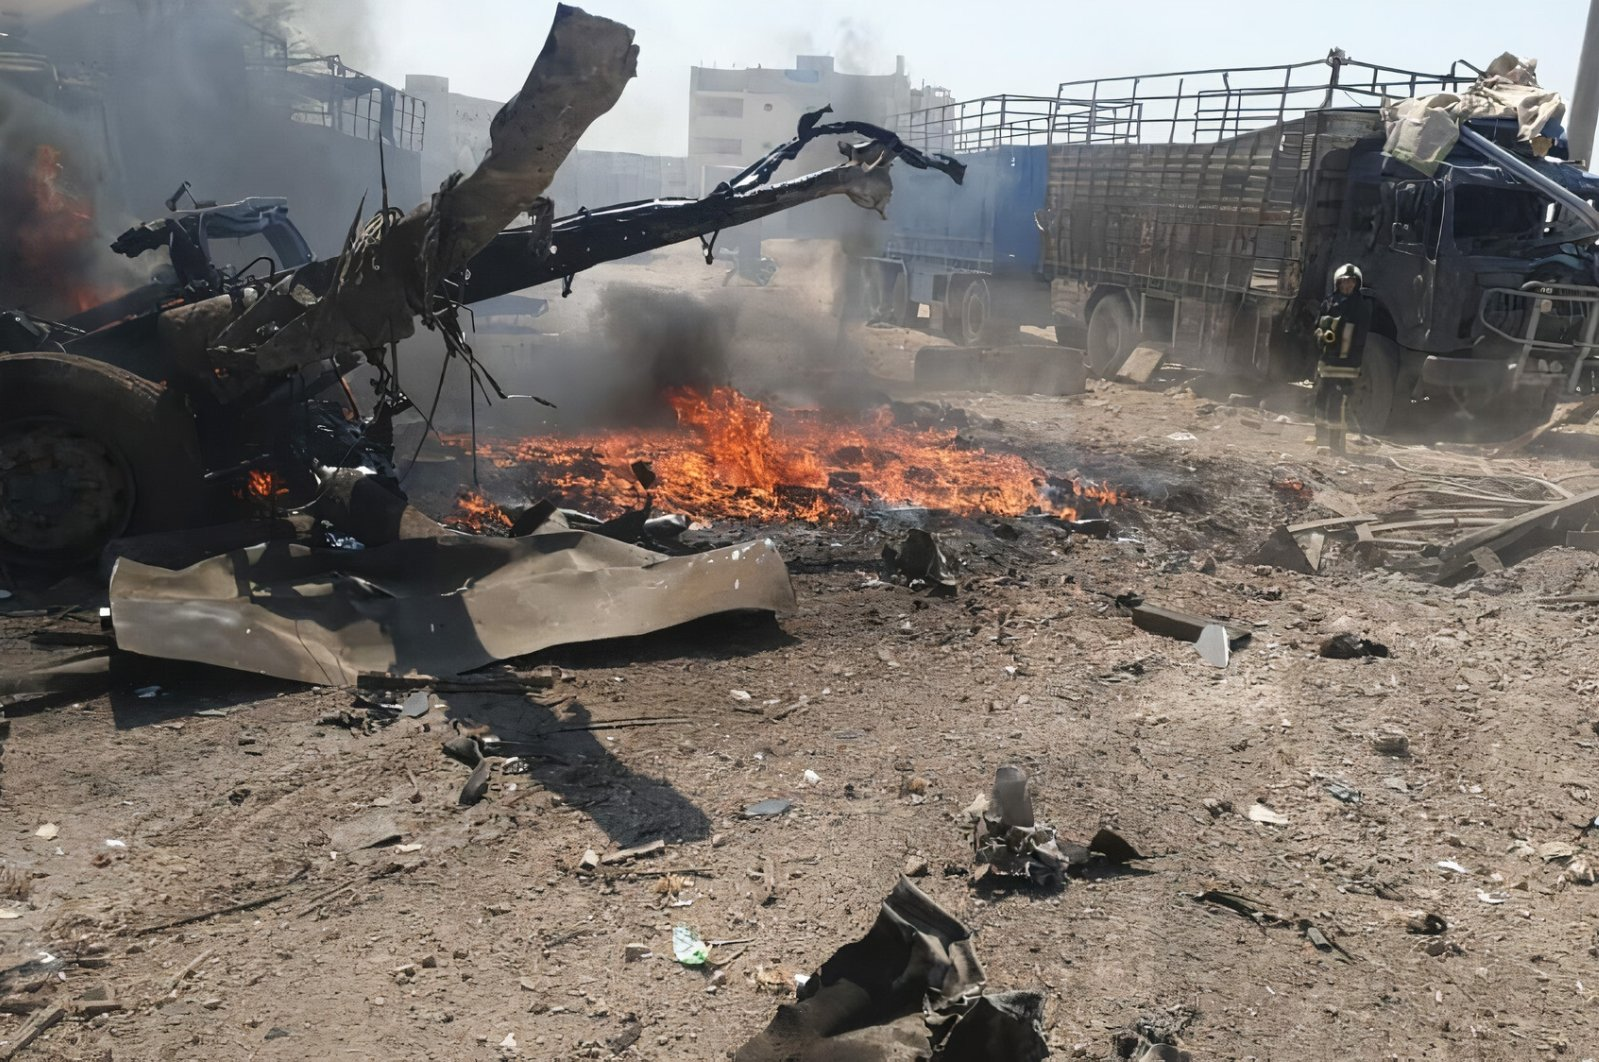 Remnants of a vehicle are seen after a car bomb explosion in Syria's Azaz, Aug. 23, 2021. (IHA Photo)